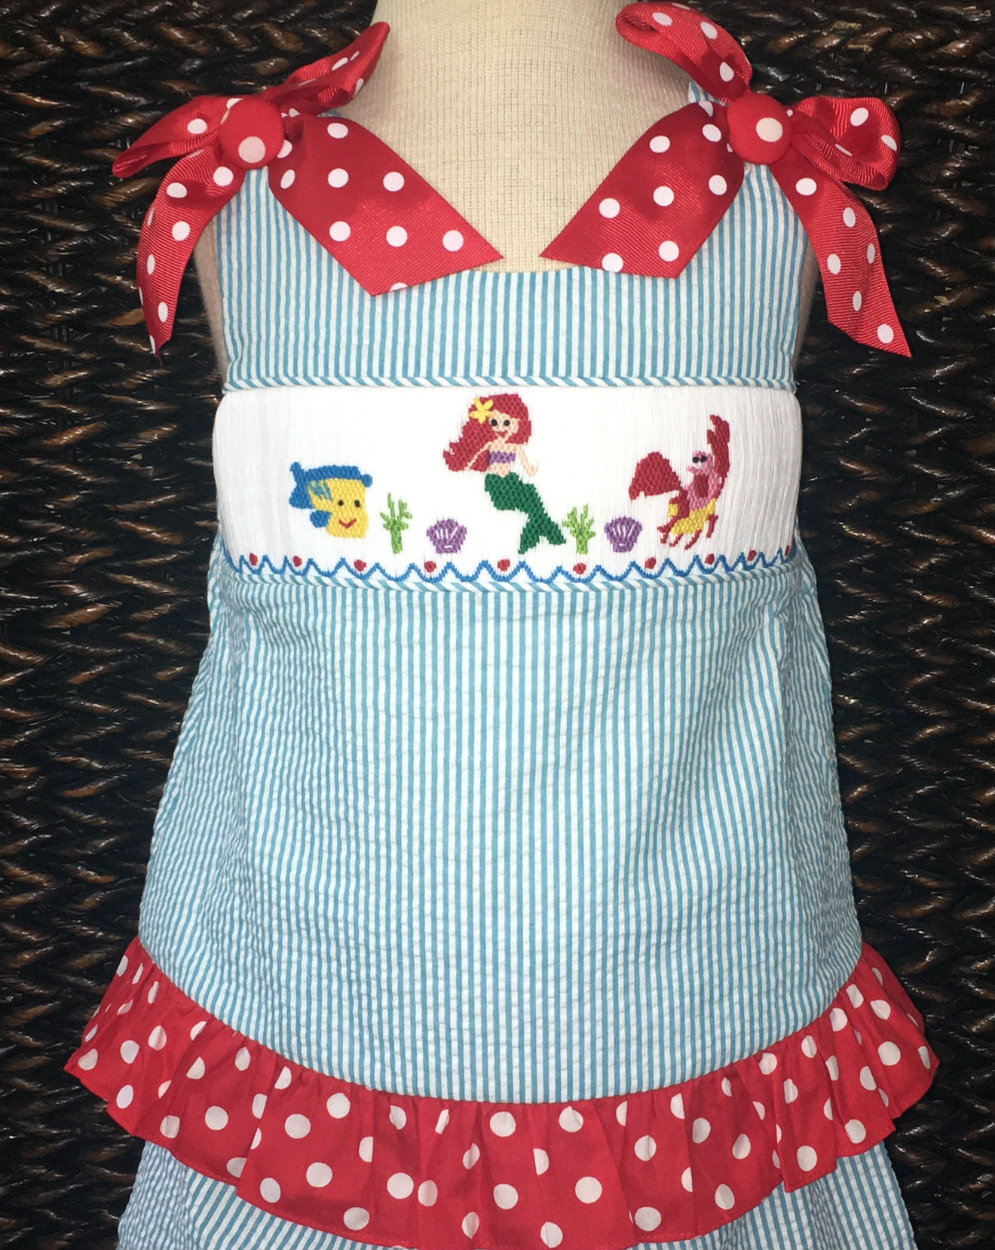 4736ea87bf three-sisters-girl -s-smocked-shorts-outfit-with-flounder-ariel-and-sebastion-the-crab-21.jpg